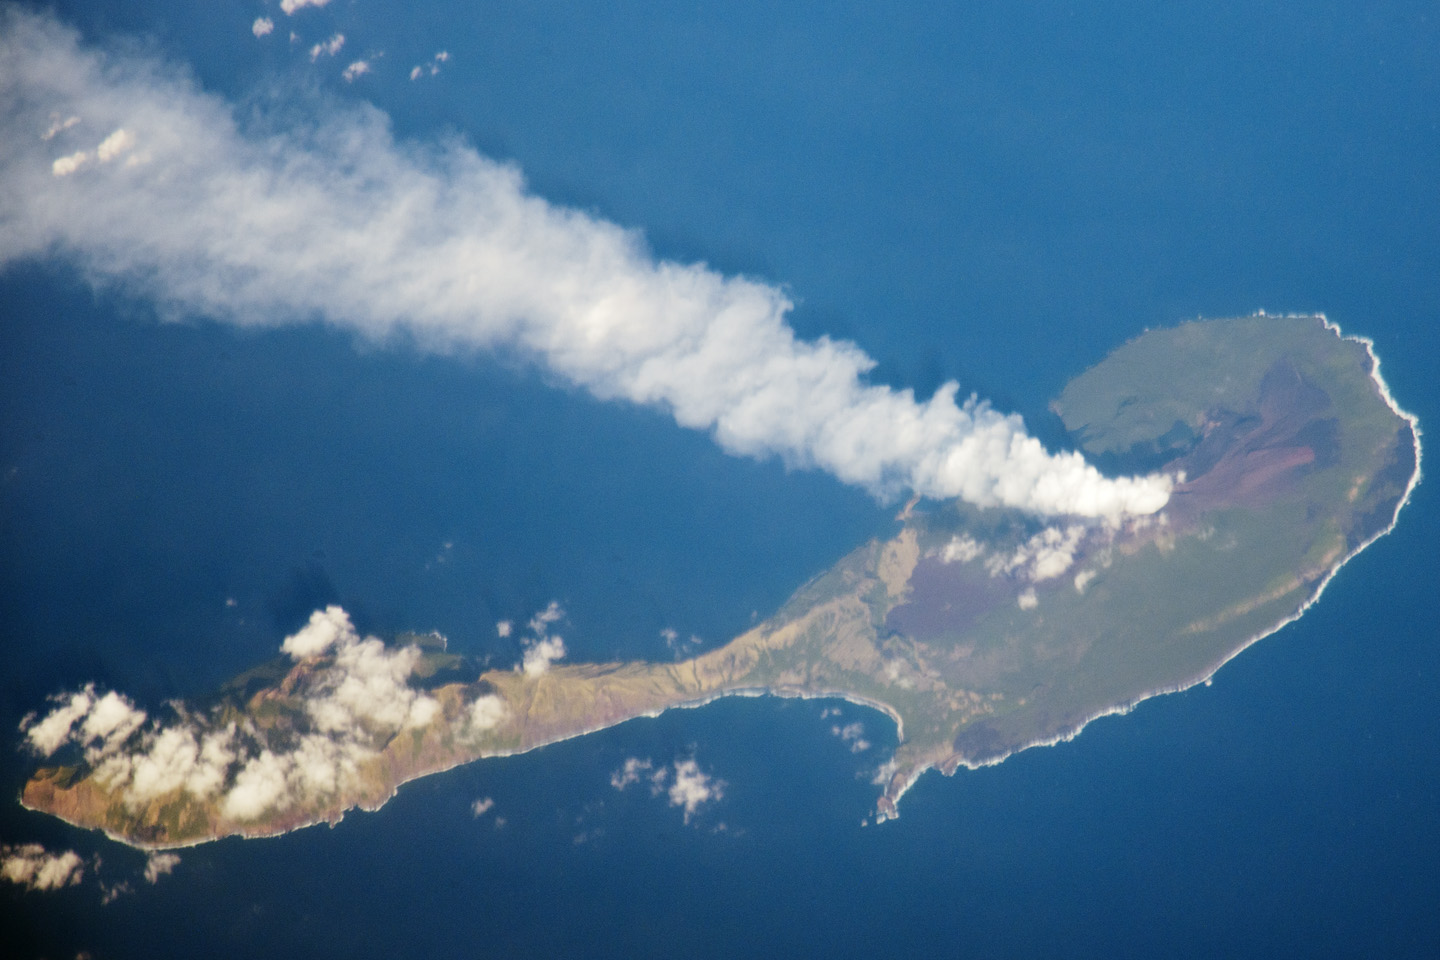 A steam plume blows south from the peak of Pagan Island's northernmost volcano in this photograph by an astronaut on the International Space Station (ISS). The ISS was located over the Pacific Ocean approximately 300 miles (480 kilometers) to the southeast of Pagan Island when the image was taken. Astronaut photograph ISS030-E-122047 was acquired on March 6, 2012, with a Nikon D3X digital camera using an effective 1200 mm lens, and is provided by the ISS Crew Earth Observations experiment and Image Science & Analysis Laboratory, Johnson Space Center. The image was taken by the Expedition 30 crew.